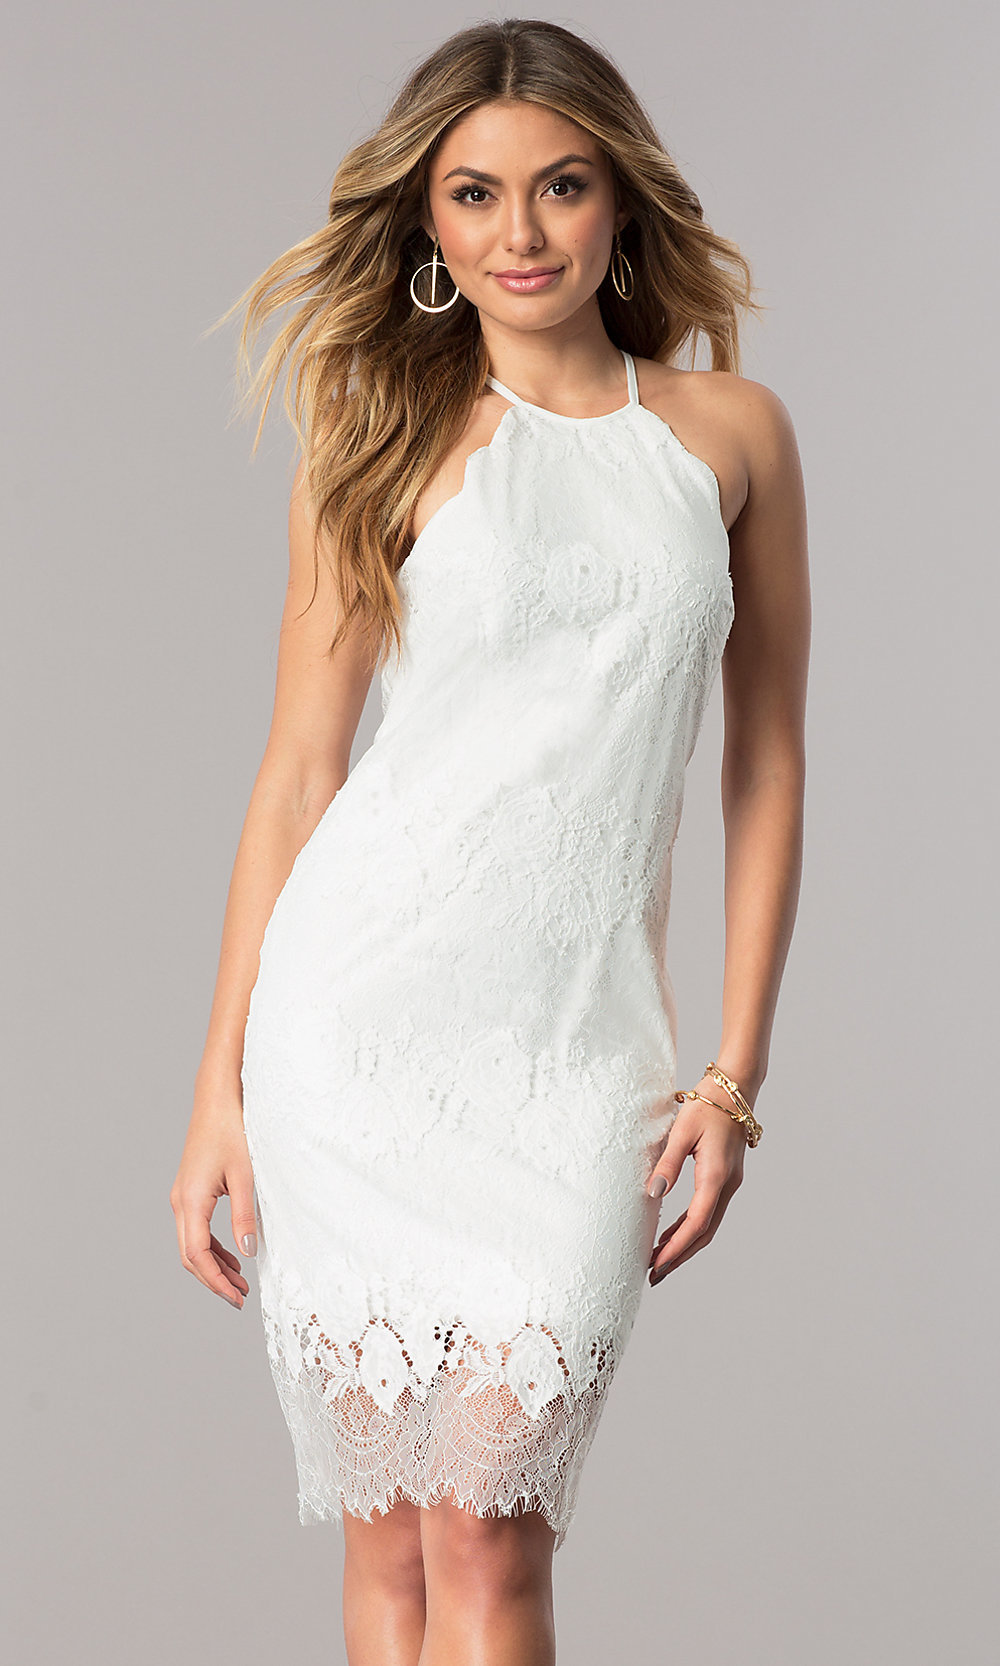 White Lace Rehearsal Dinner Short Party Dress